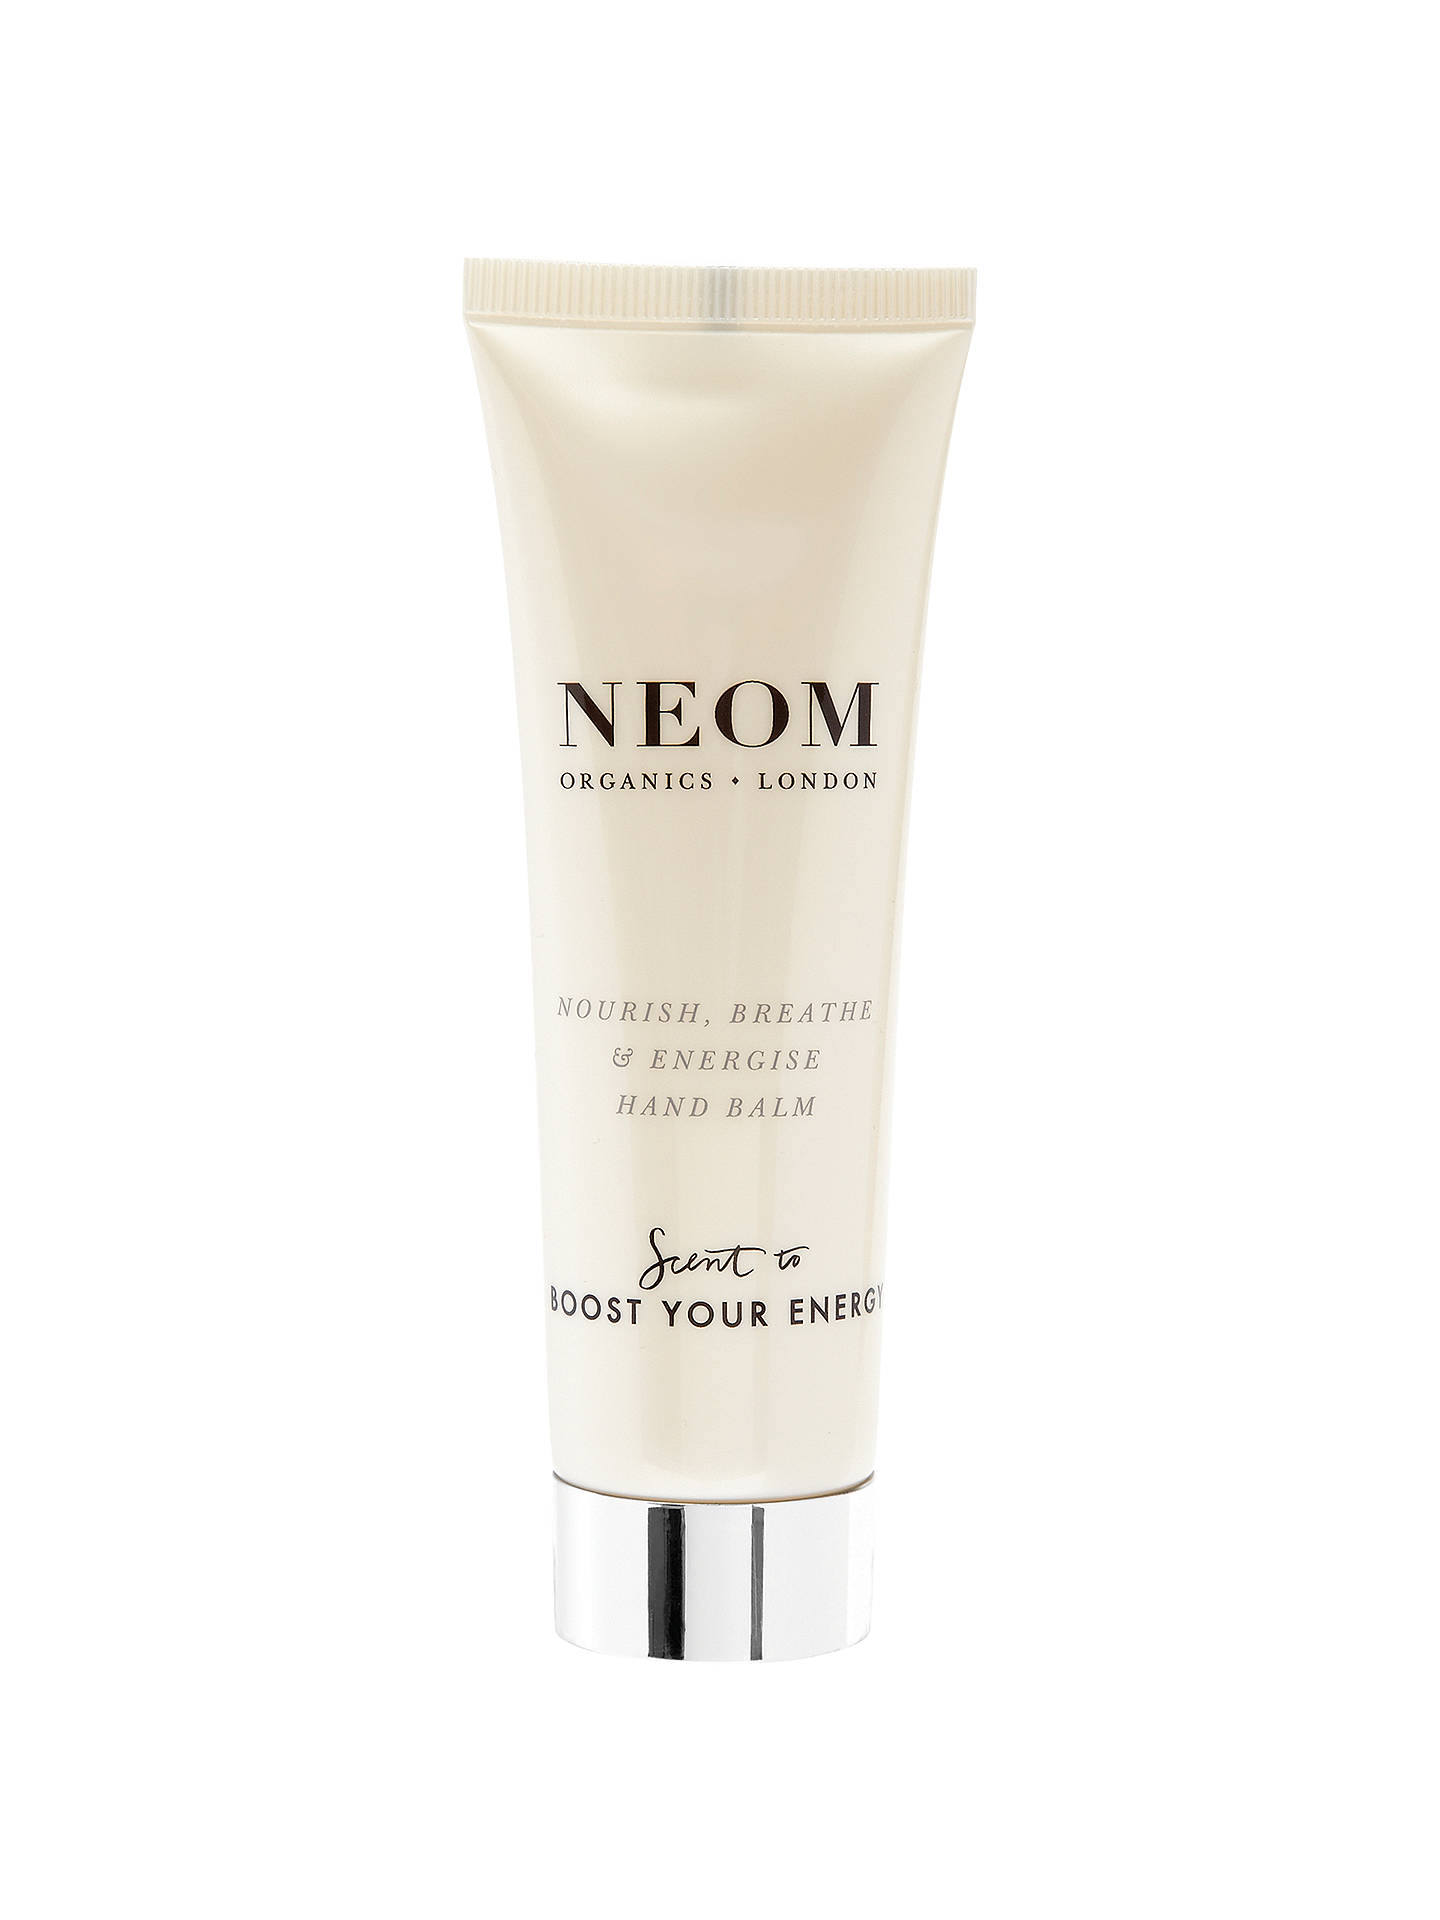 Buy Neom Organics London Nourish, Breathe & Energise Hand Balm, 50ml Online at johnlewis.com